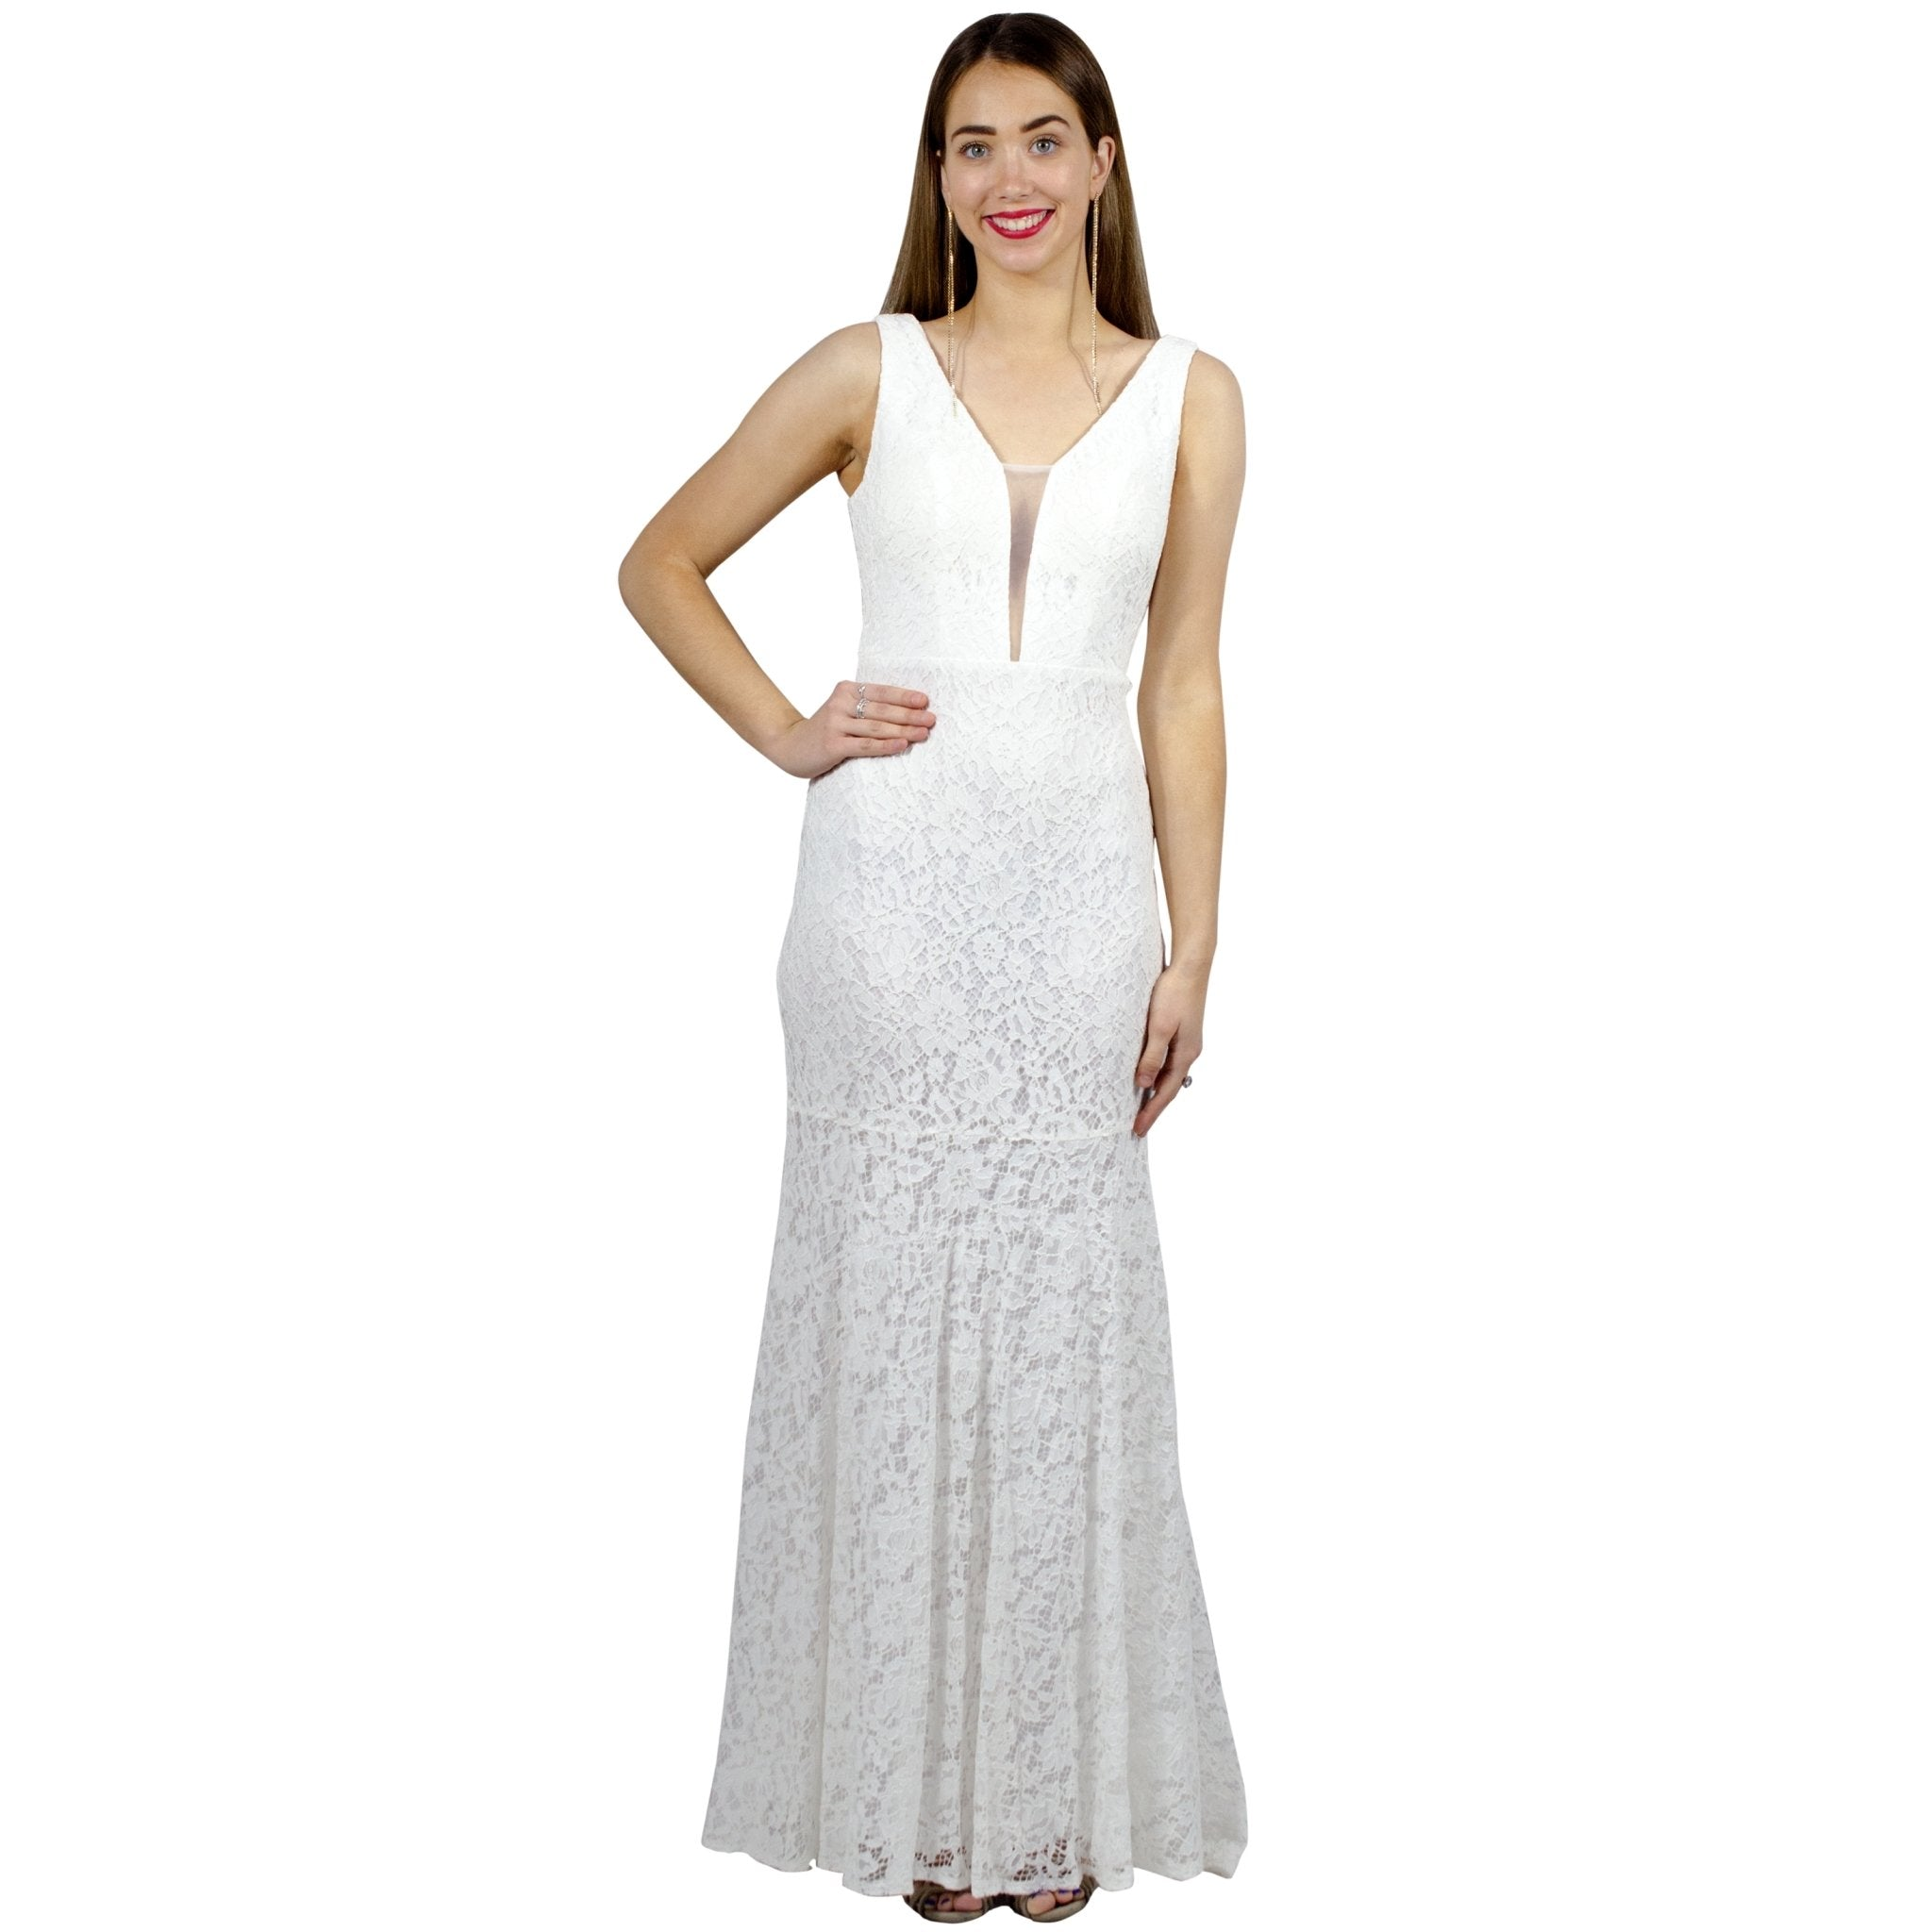 EUGINA | V Neck White Lace Evening Dress - All Products Envious Bridal